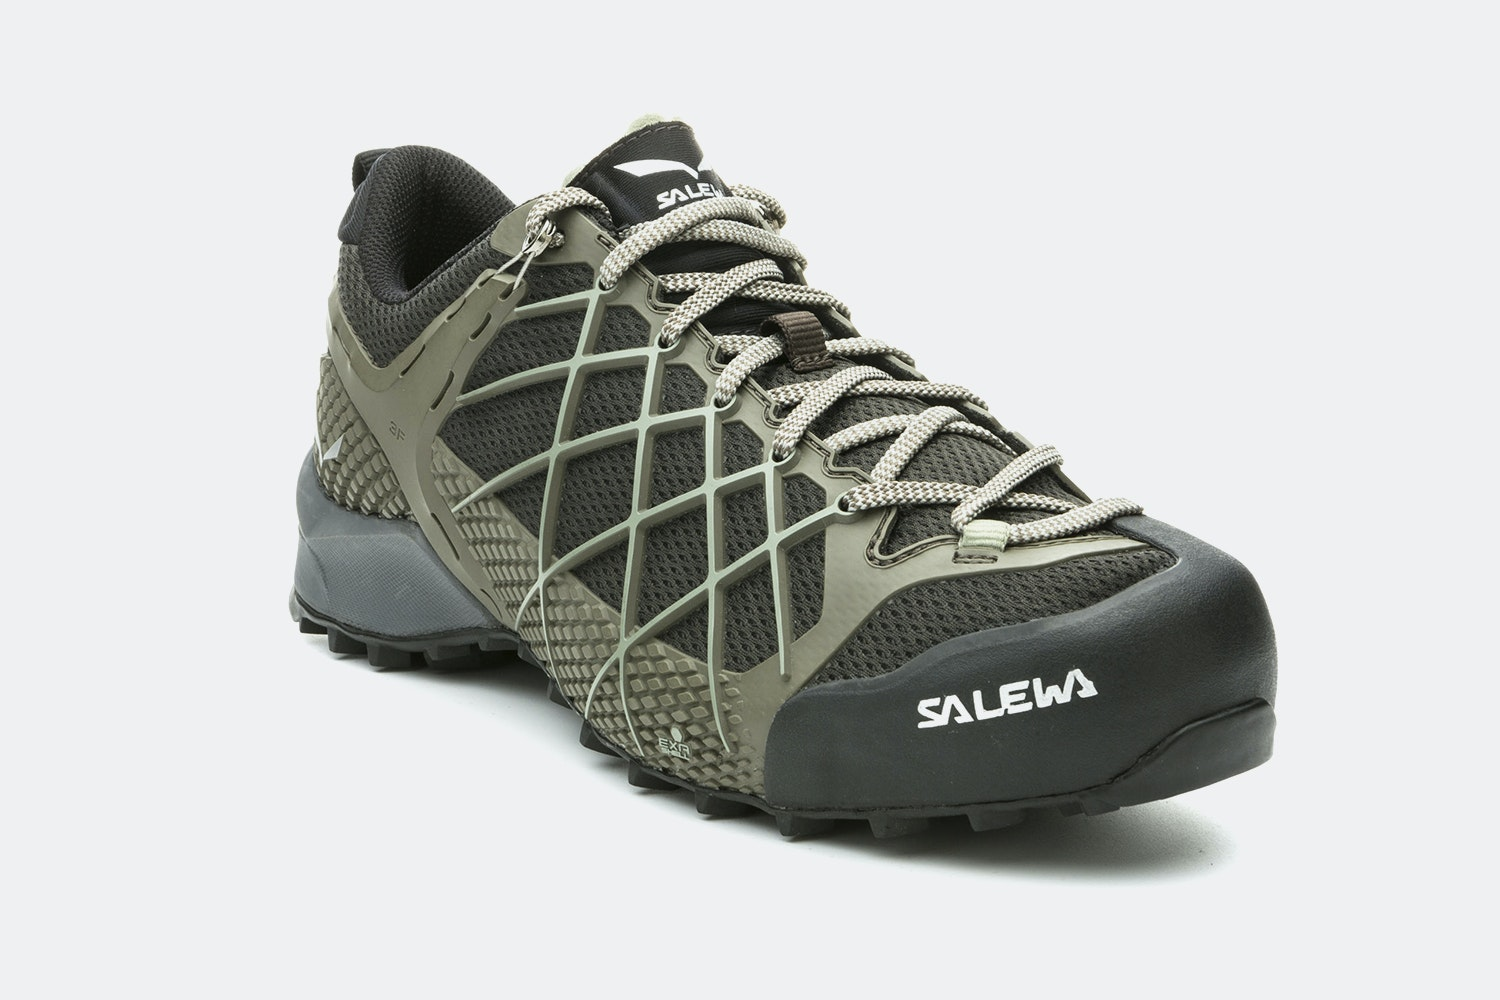 Salewa Wildfire Shoes